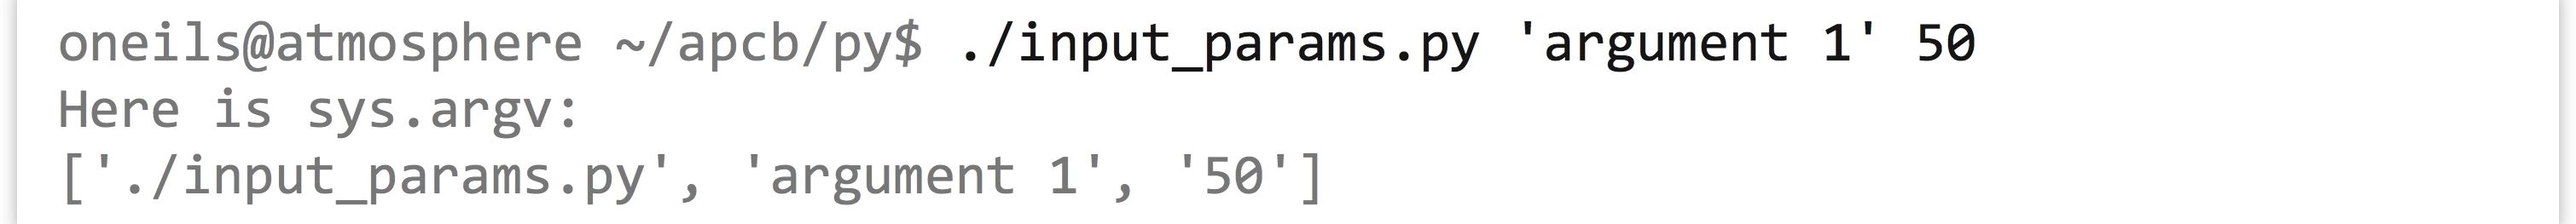 II.7_13_py_69_params_ex_out2